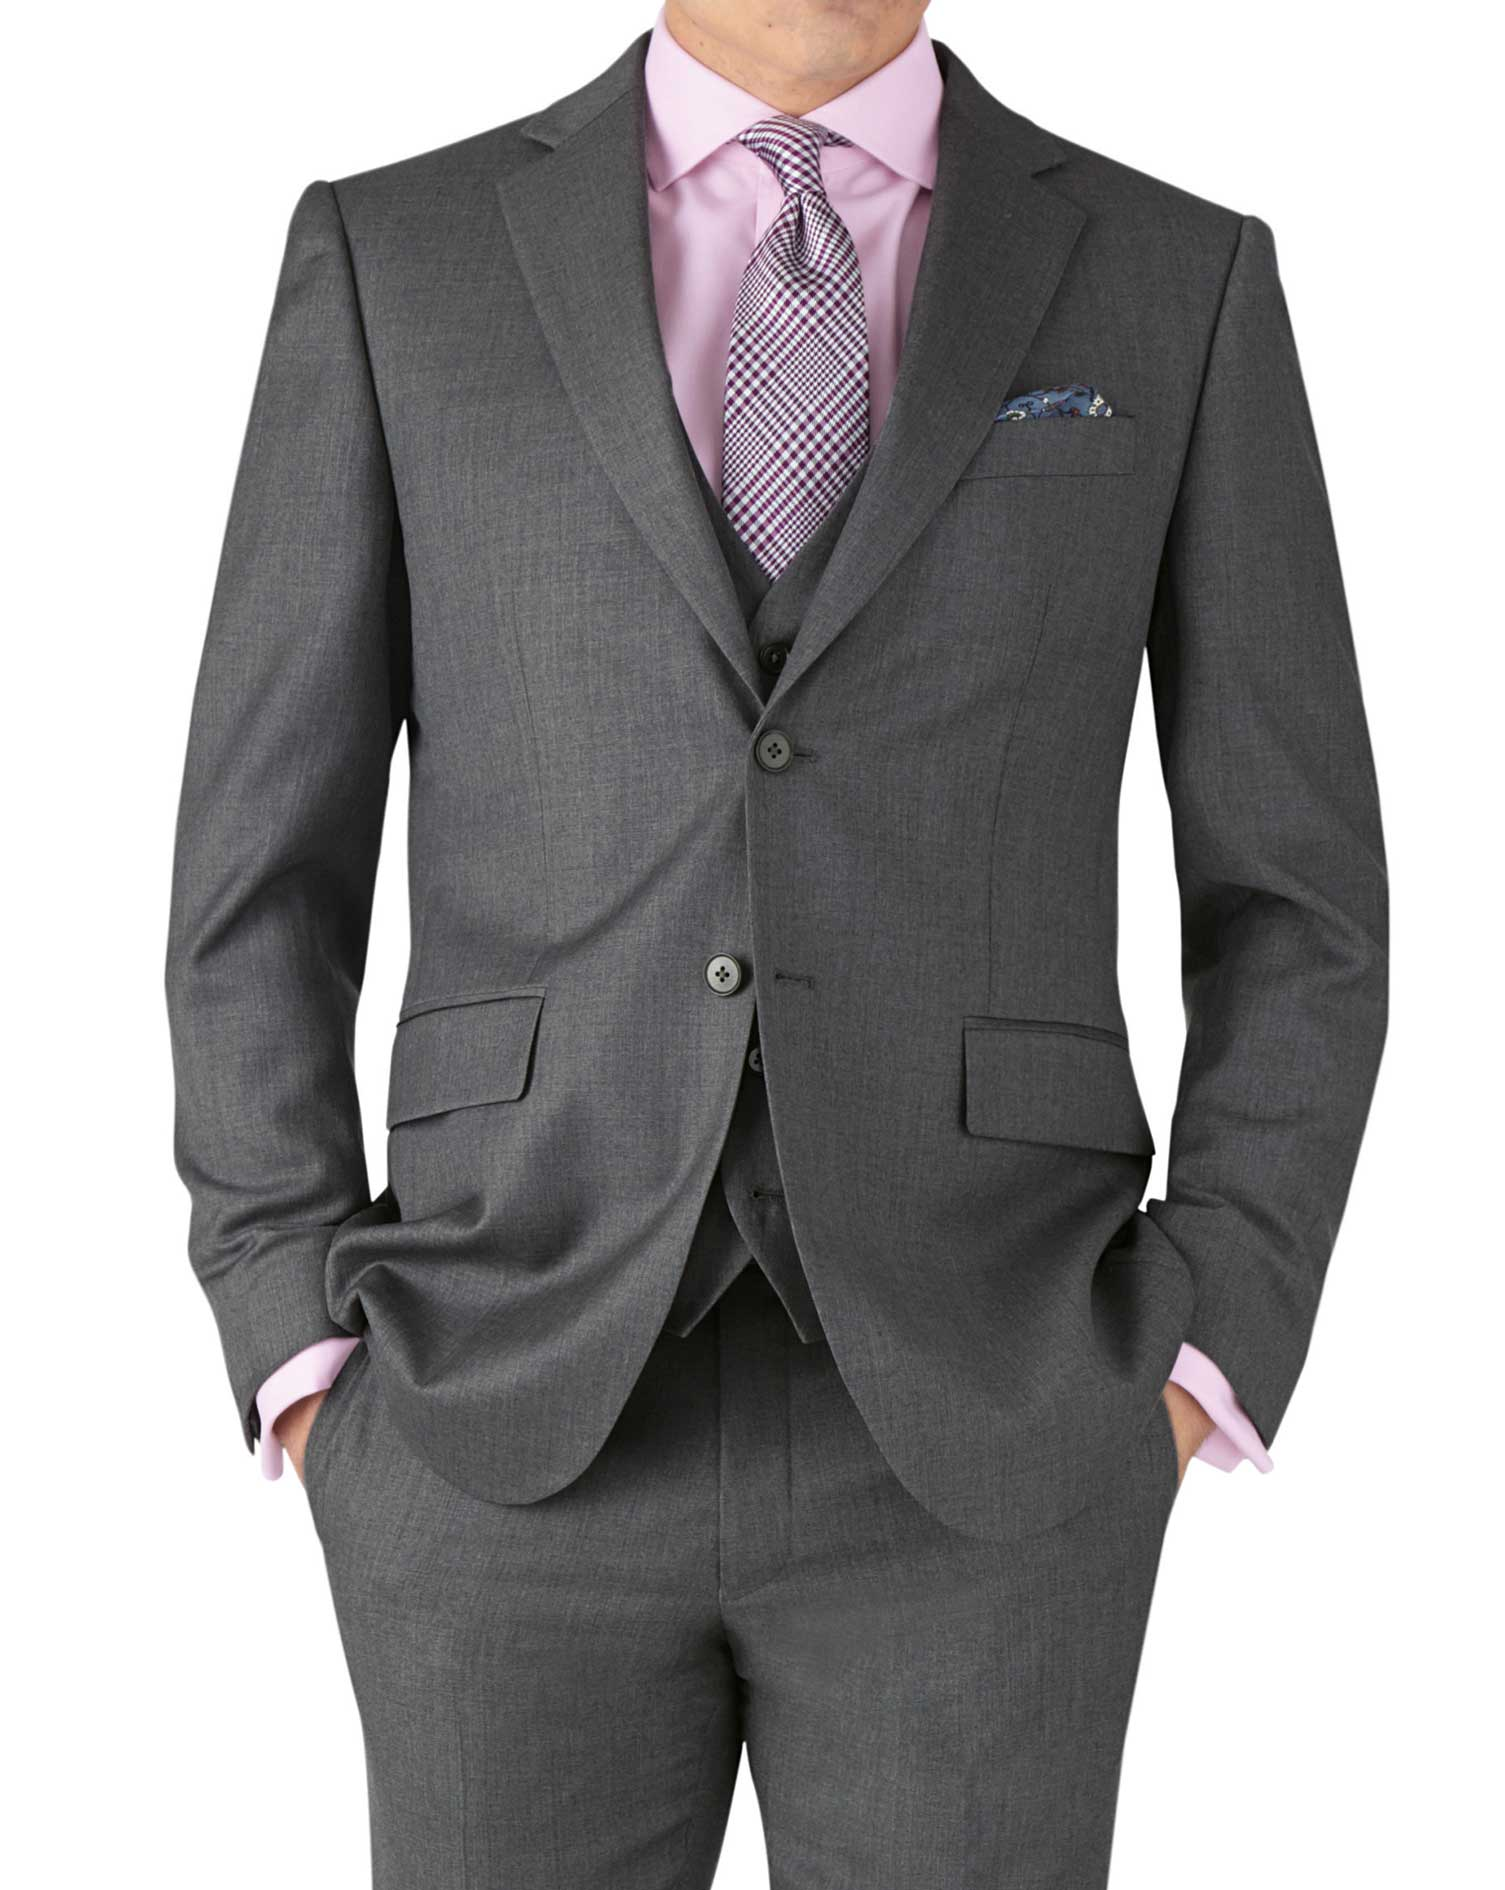 Mid Grey Slim Fit Twill Business Suit Wool Jacket Size 40 Long by Charles Tyrwhitt